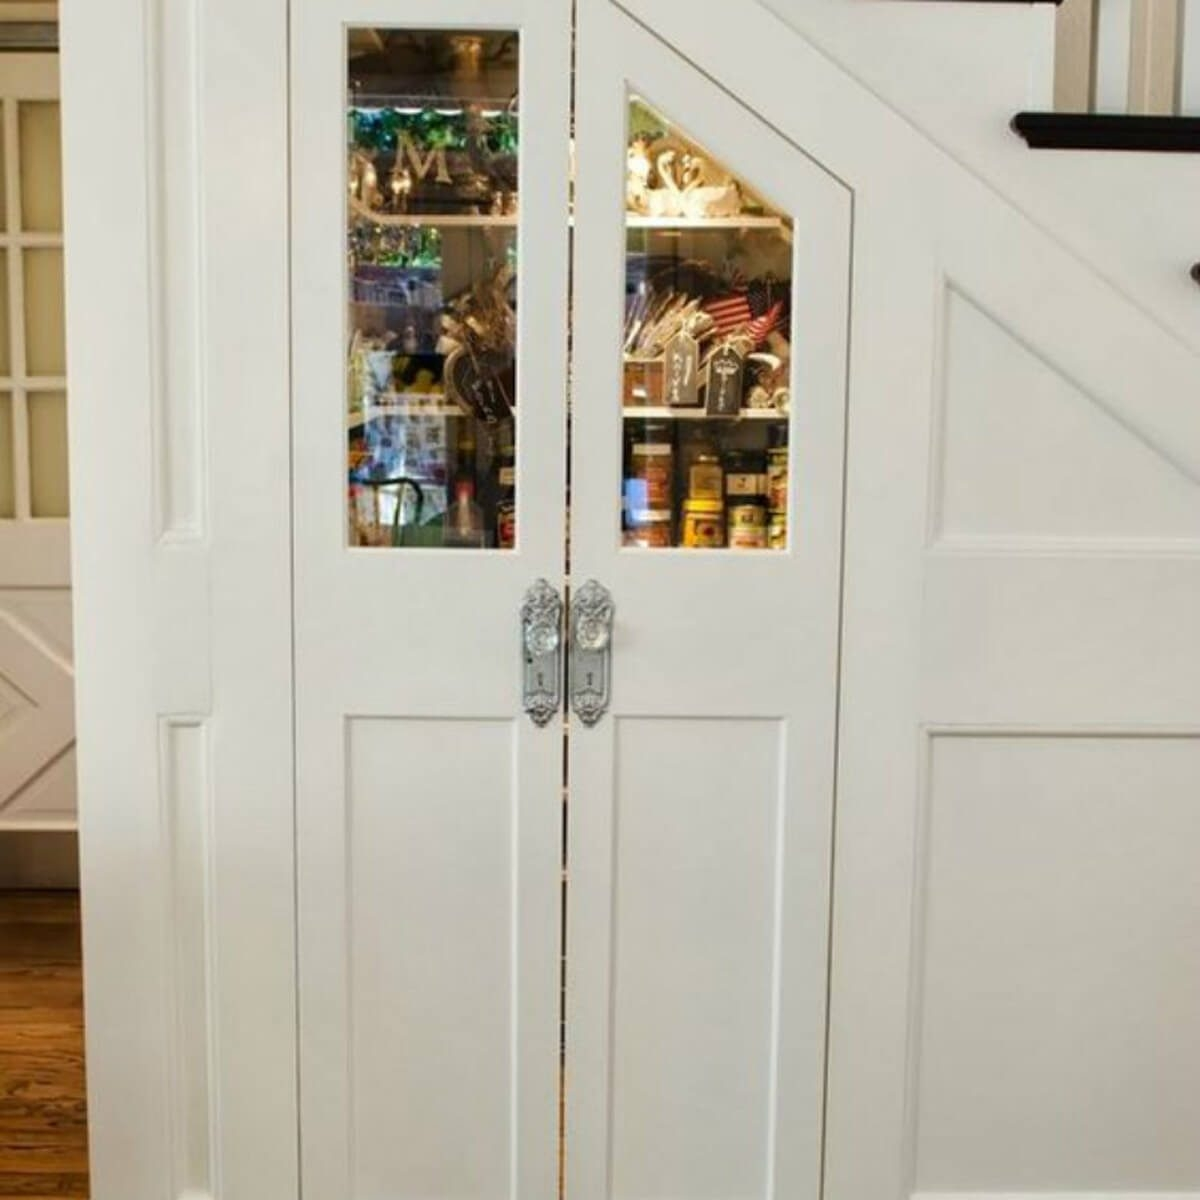 10 Genius Ideas For Building A Pantry — The Family Handyman | Wardrobe Design Under Stairs | Hallway Storage | Basement Stairs | Stair Case | Living Room | Shoe